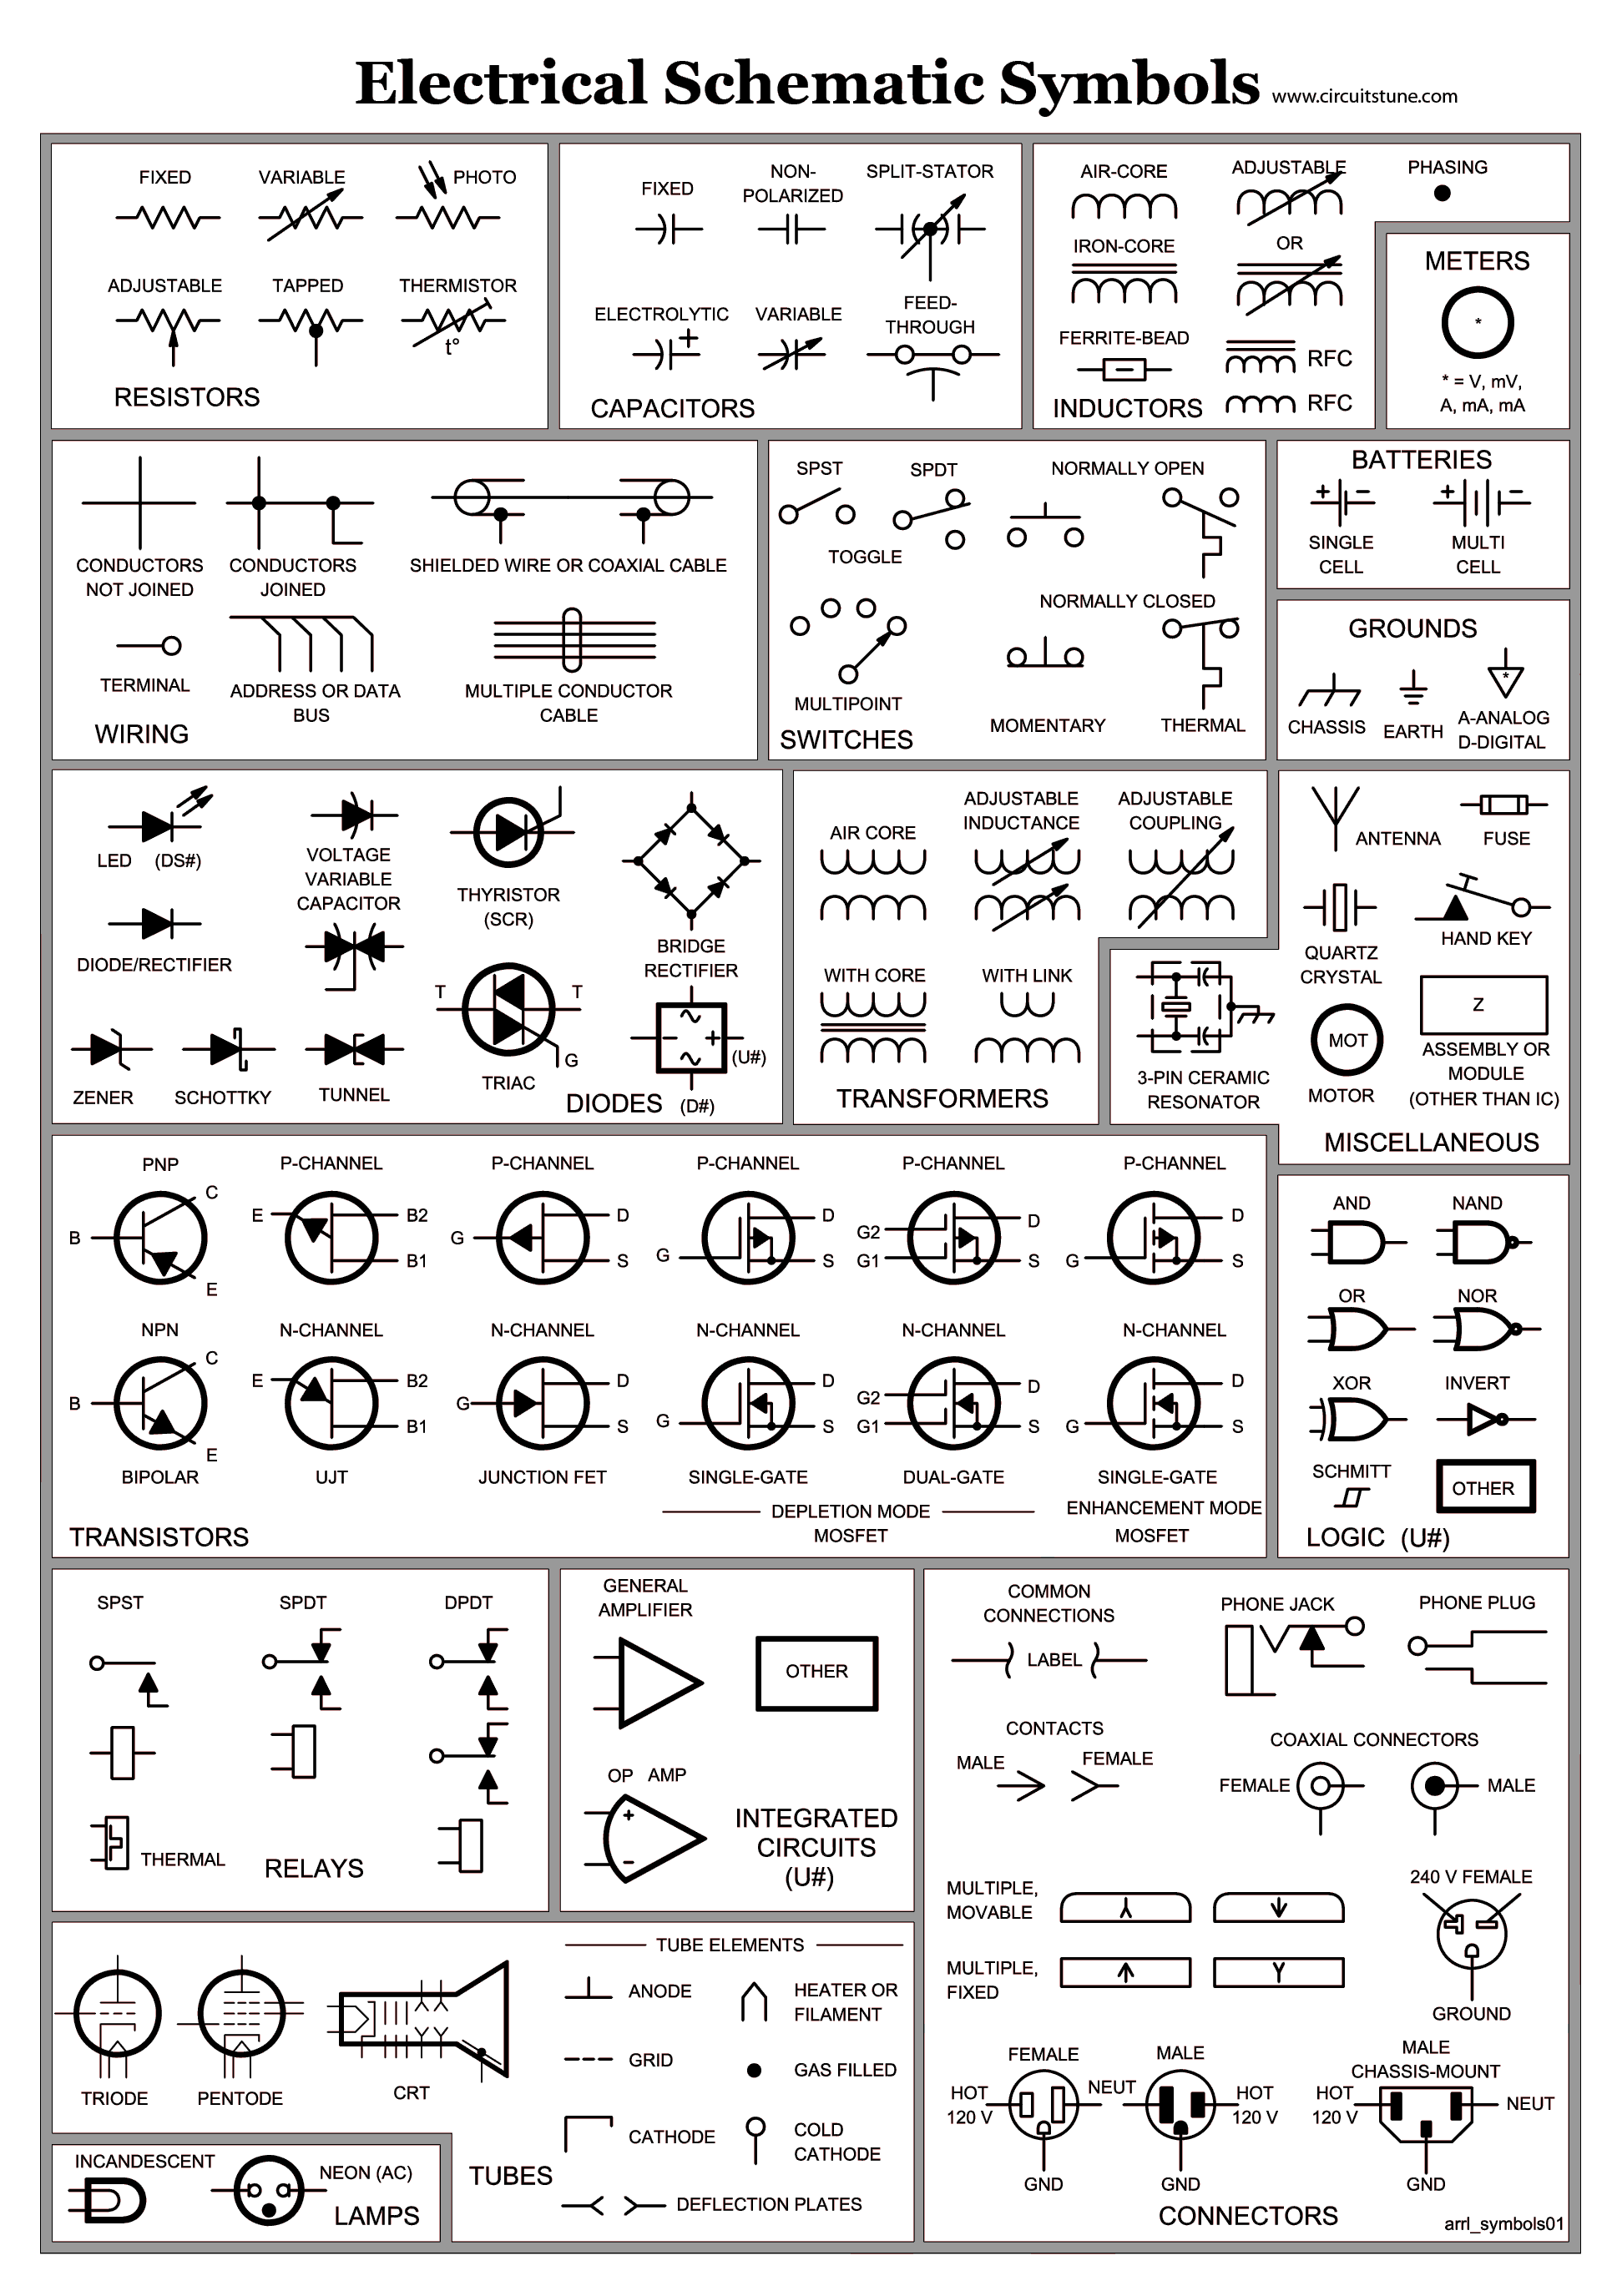 a65d176364692d2ebe913b58a654cfc3 electrical schematic symbols wire diagram symbols automotive understanding automotive wiring diagrams at webbmarketing.co